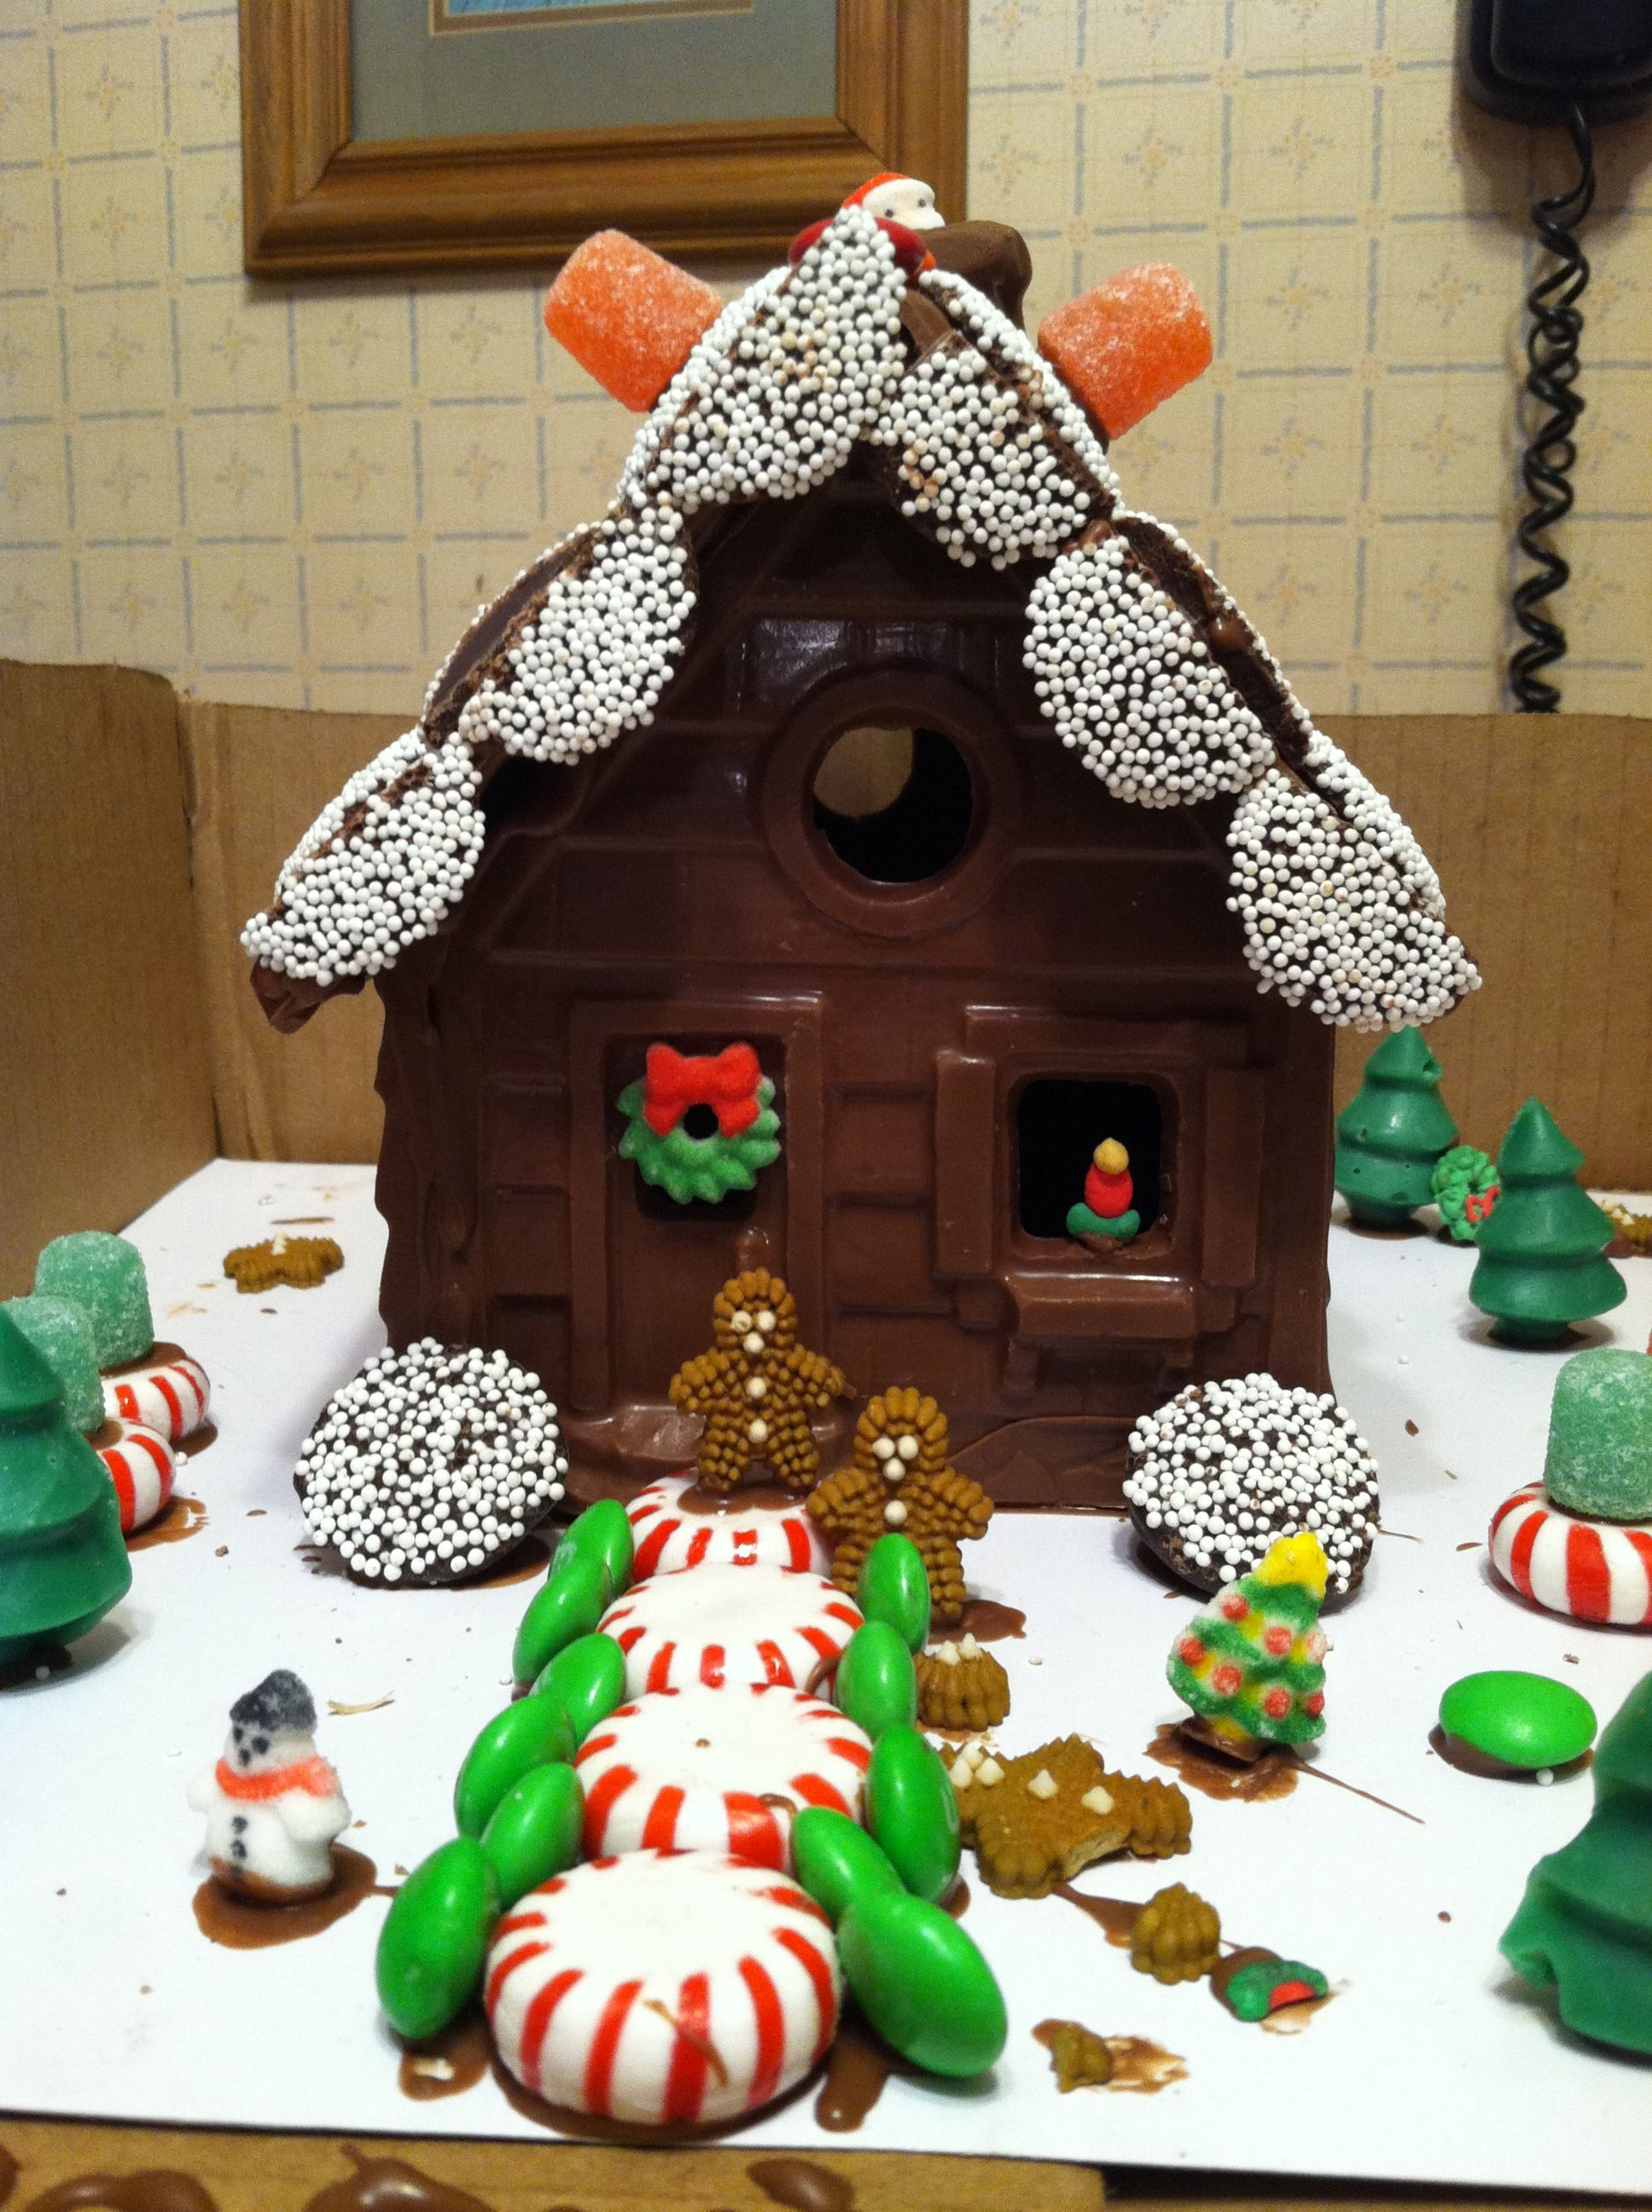 Chocolate House I Made With My Nephew We Used Melting Chocolate Molds And Candy Candy House Chocolate House Ginger House